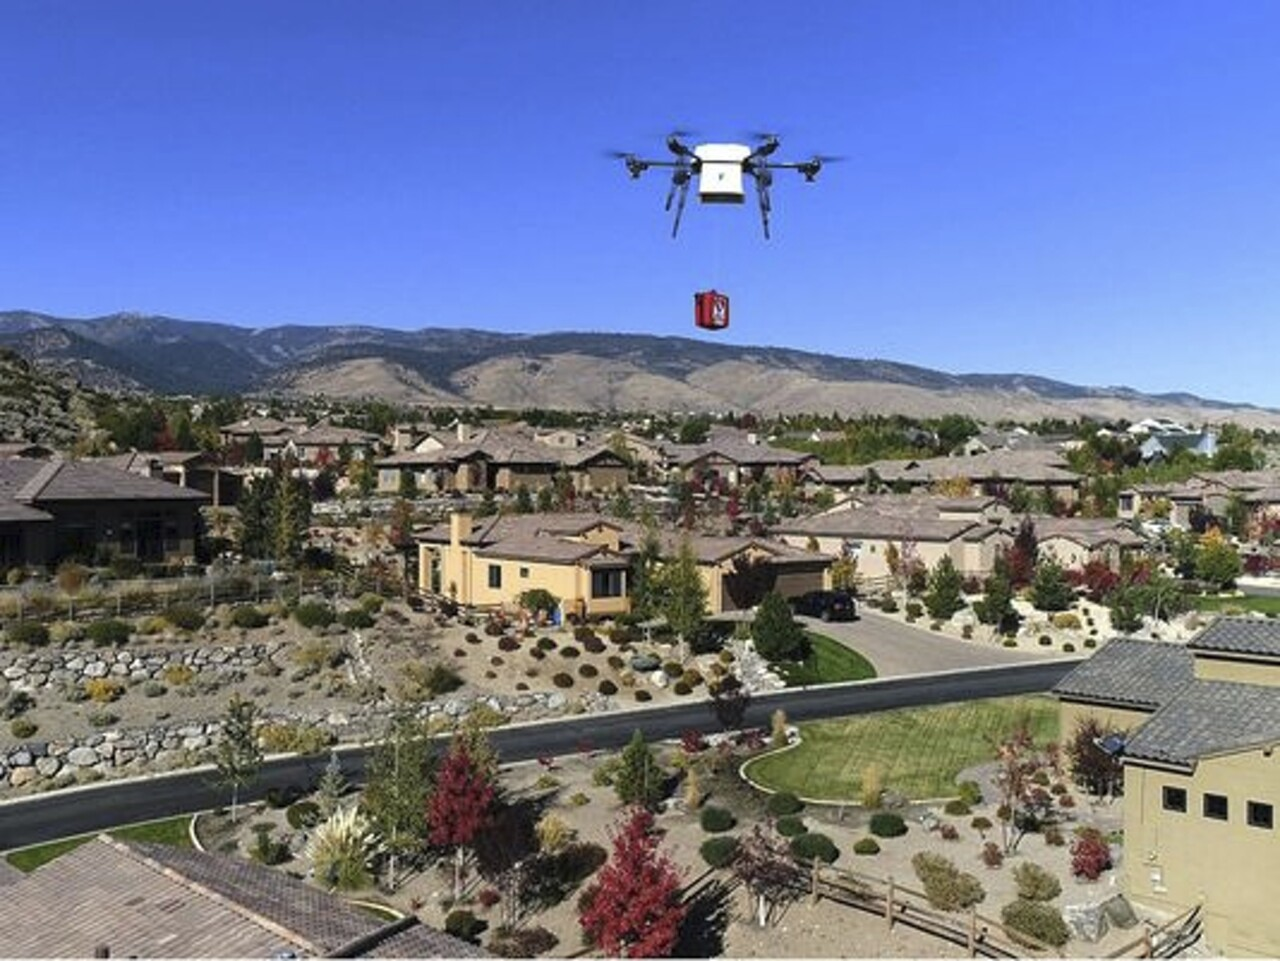 Drone Deliveries Reno